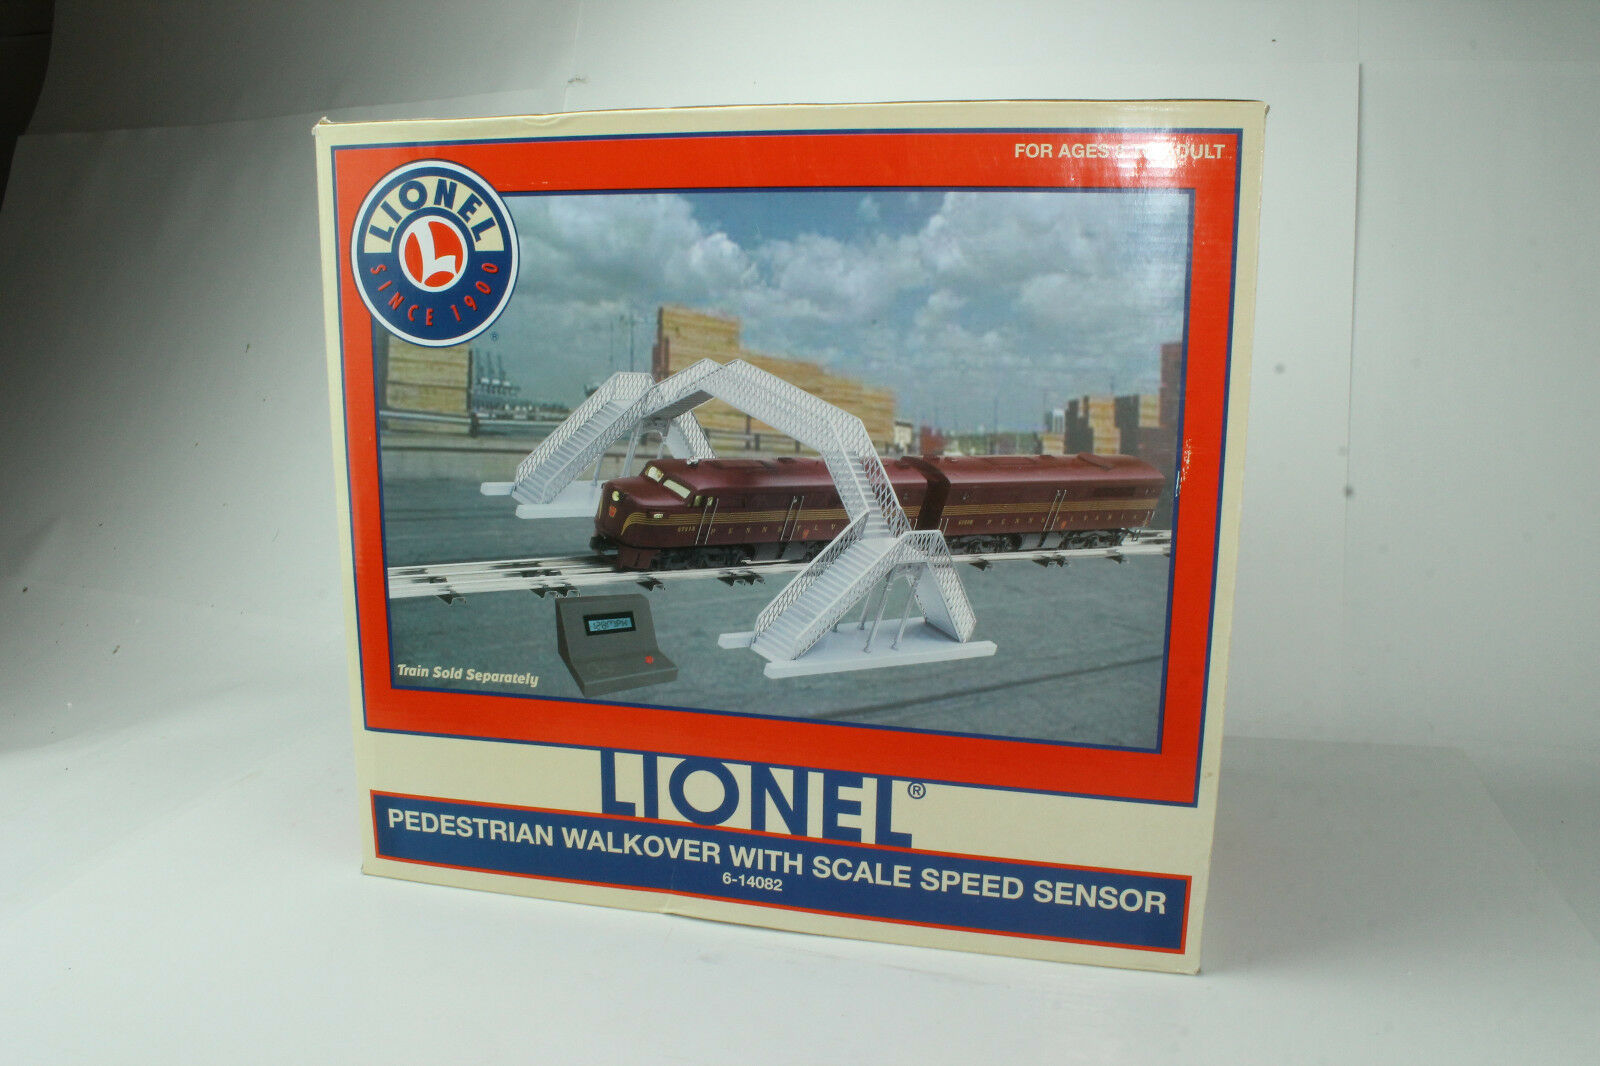 LIONEL  6-14082 PEDESTRIAN WALKOVER WITH SCALE SPEED SENSOR, NEW IN BOX